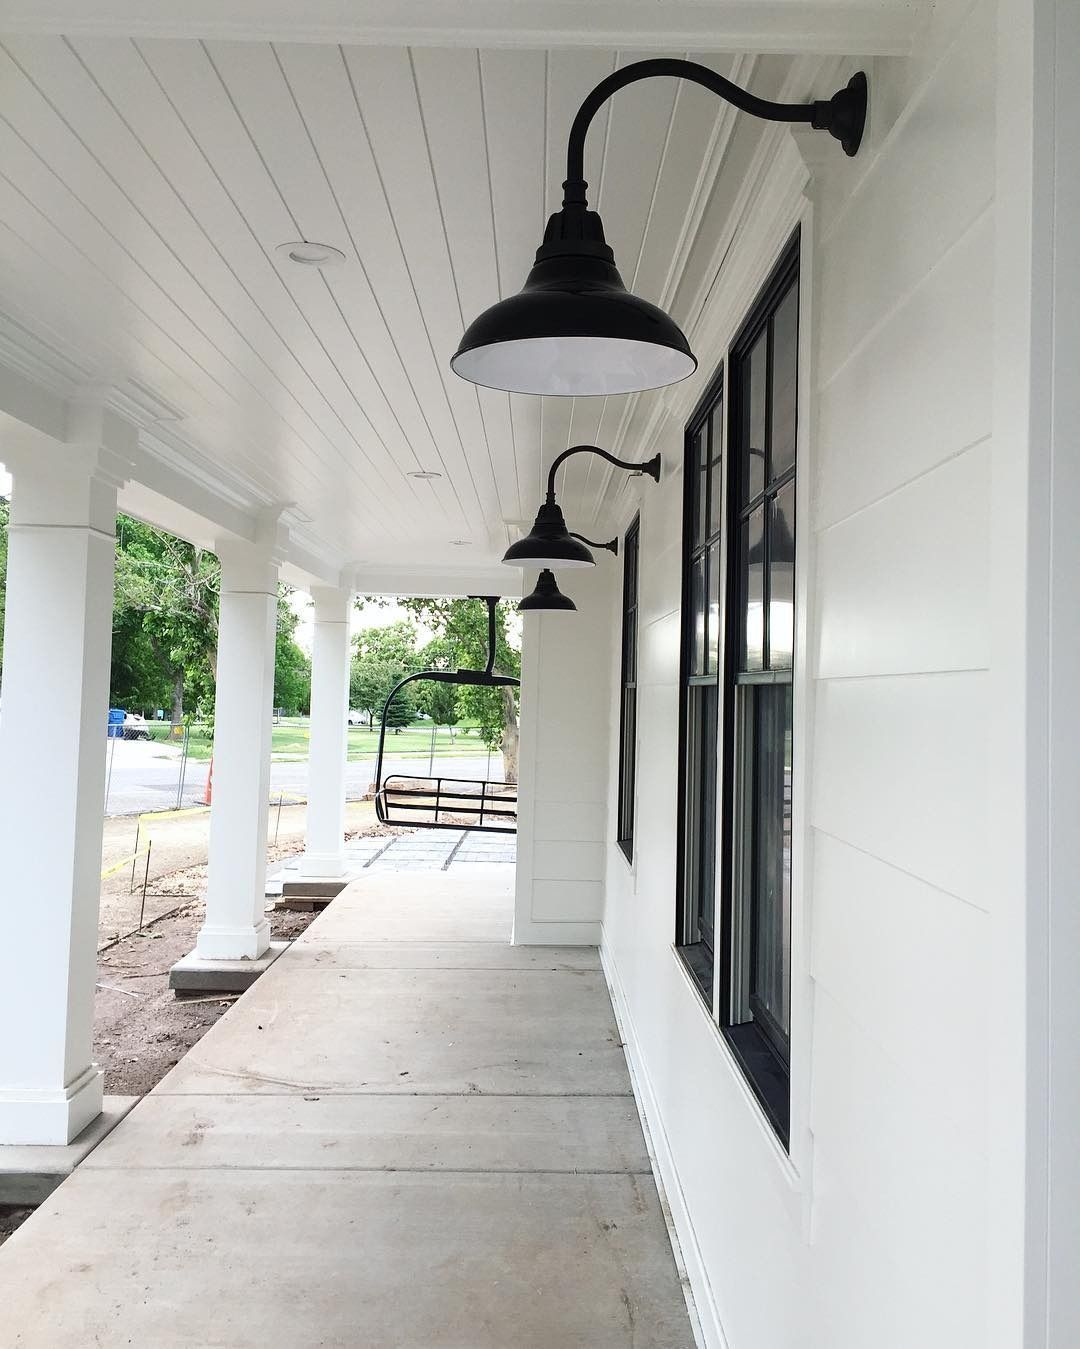 Transform Your Home with these Fantastic Garage Lighting